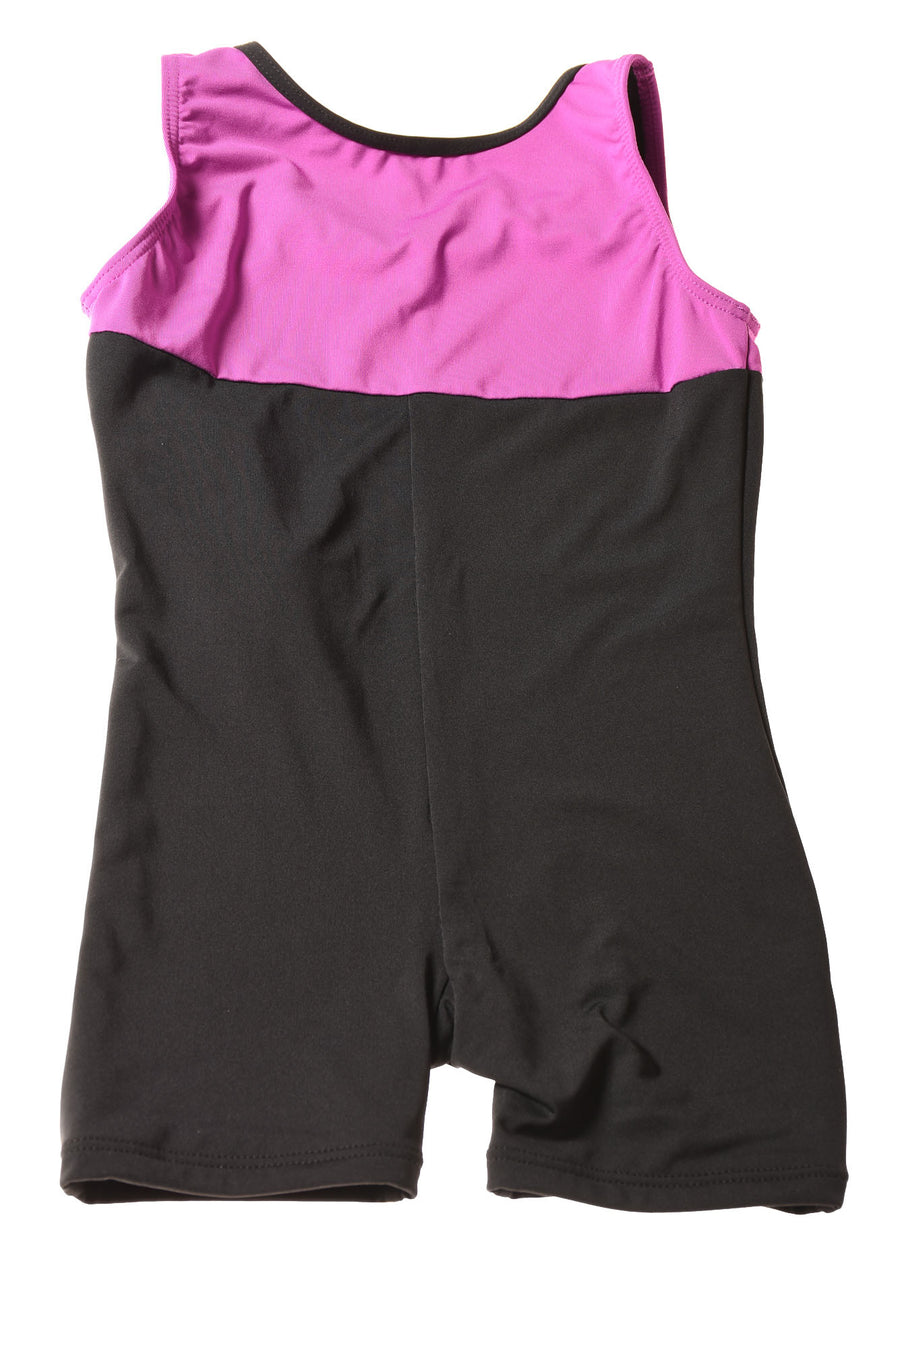 NEW Top Sports Girl's Outfit Large Black & Purple